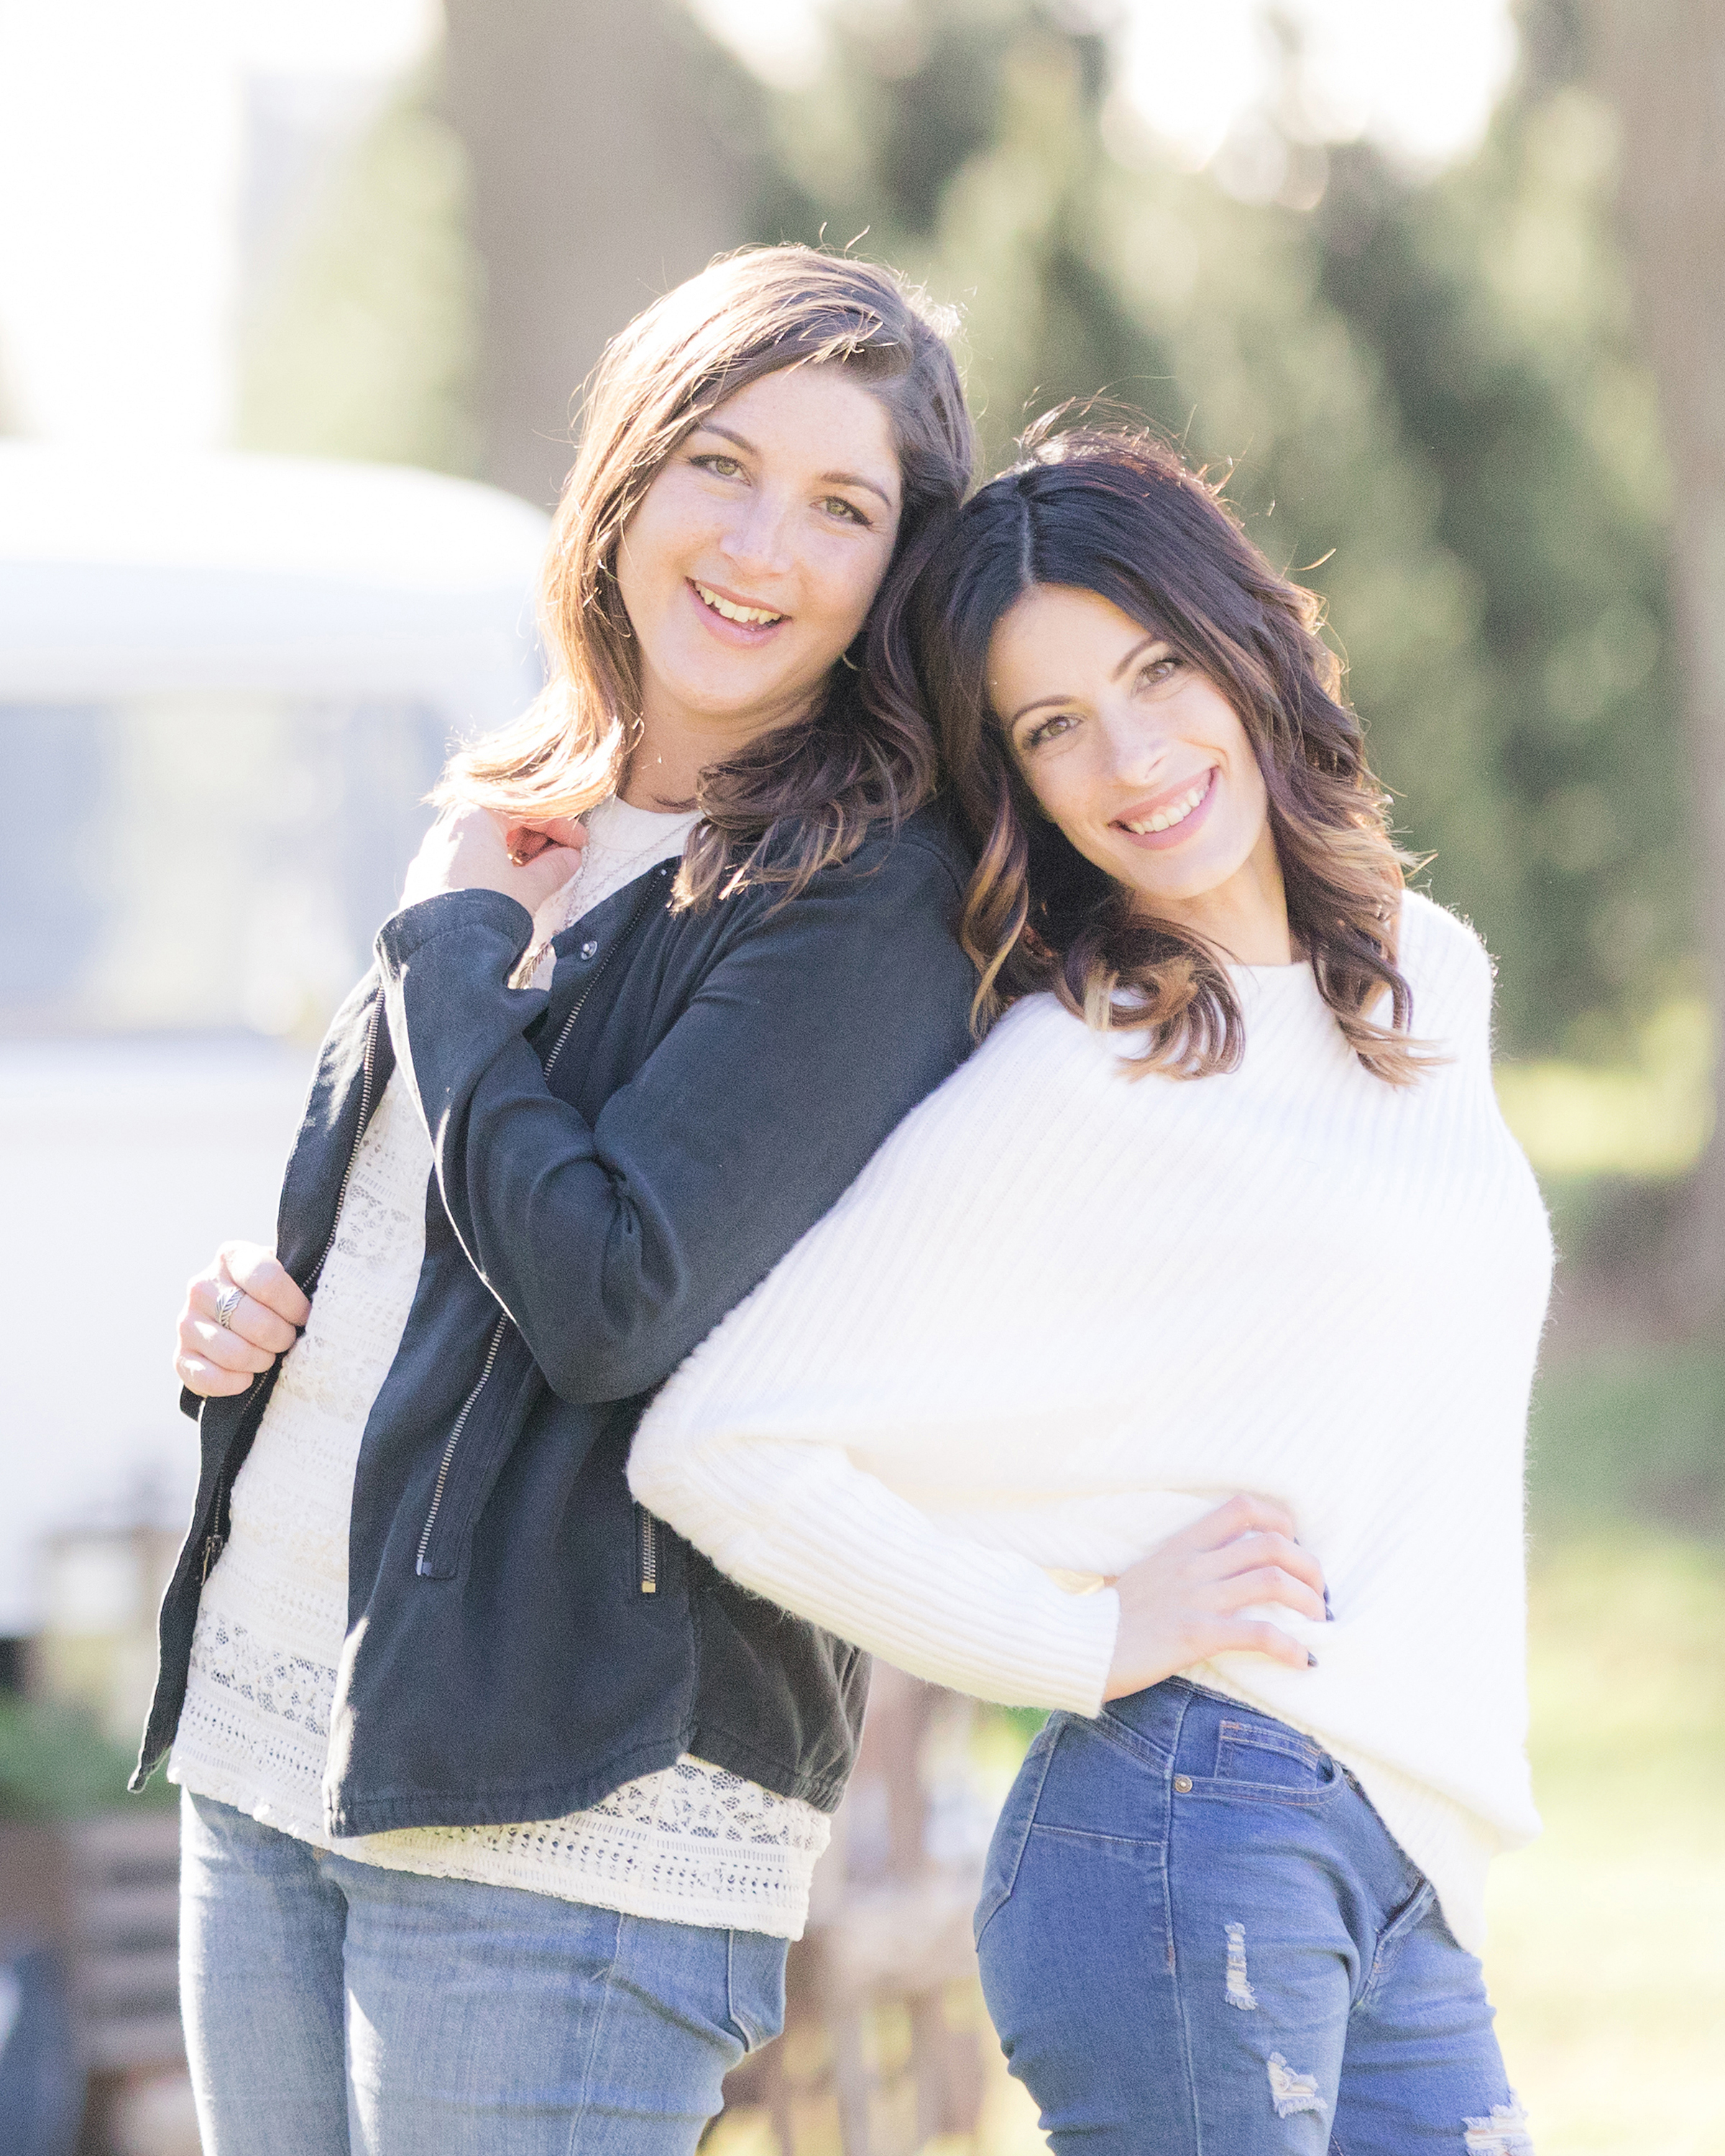 Meet your photographers - Jacqui and Julia are lifestyle photographers specializing in wedding and family photography. We love to utilize natural light for a look that's fresh, timeless and truest to you!